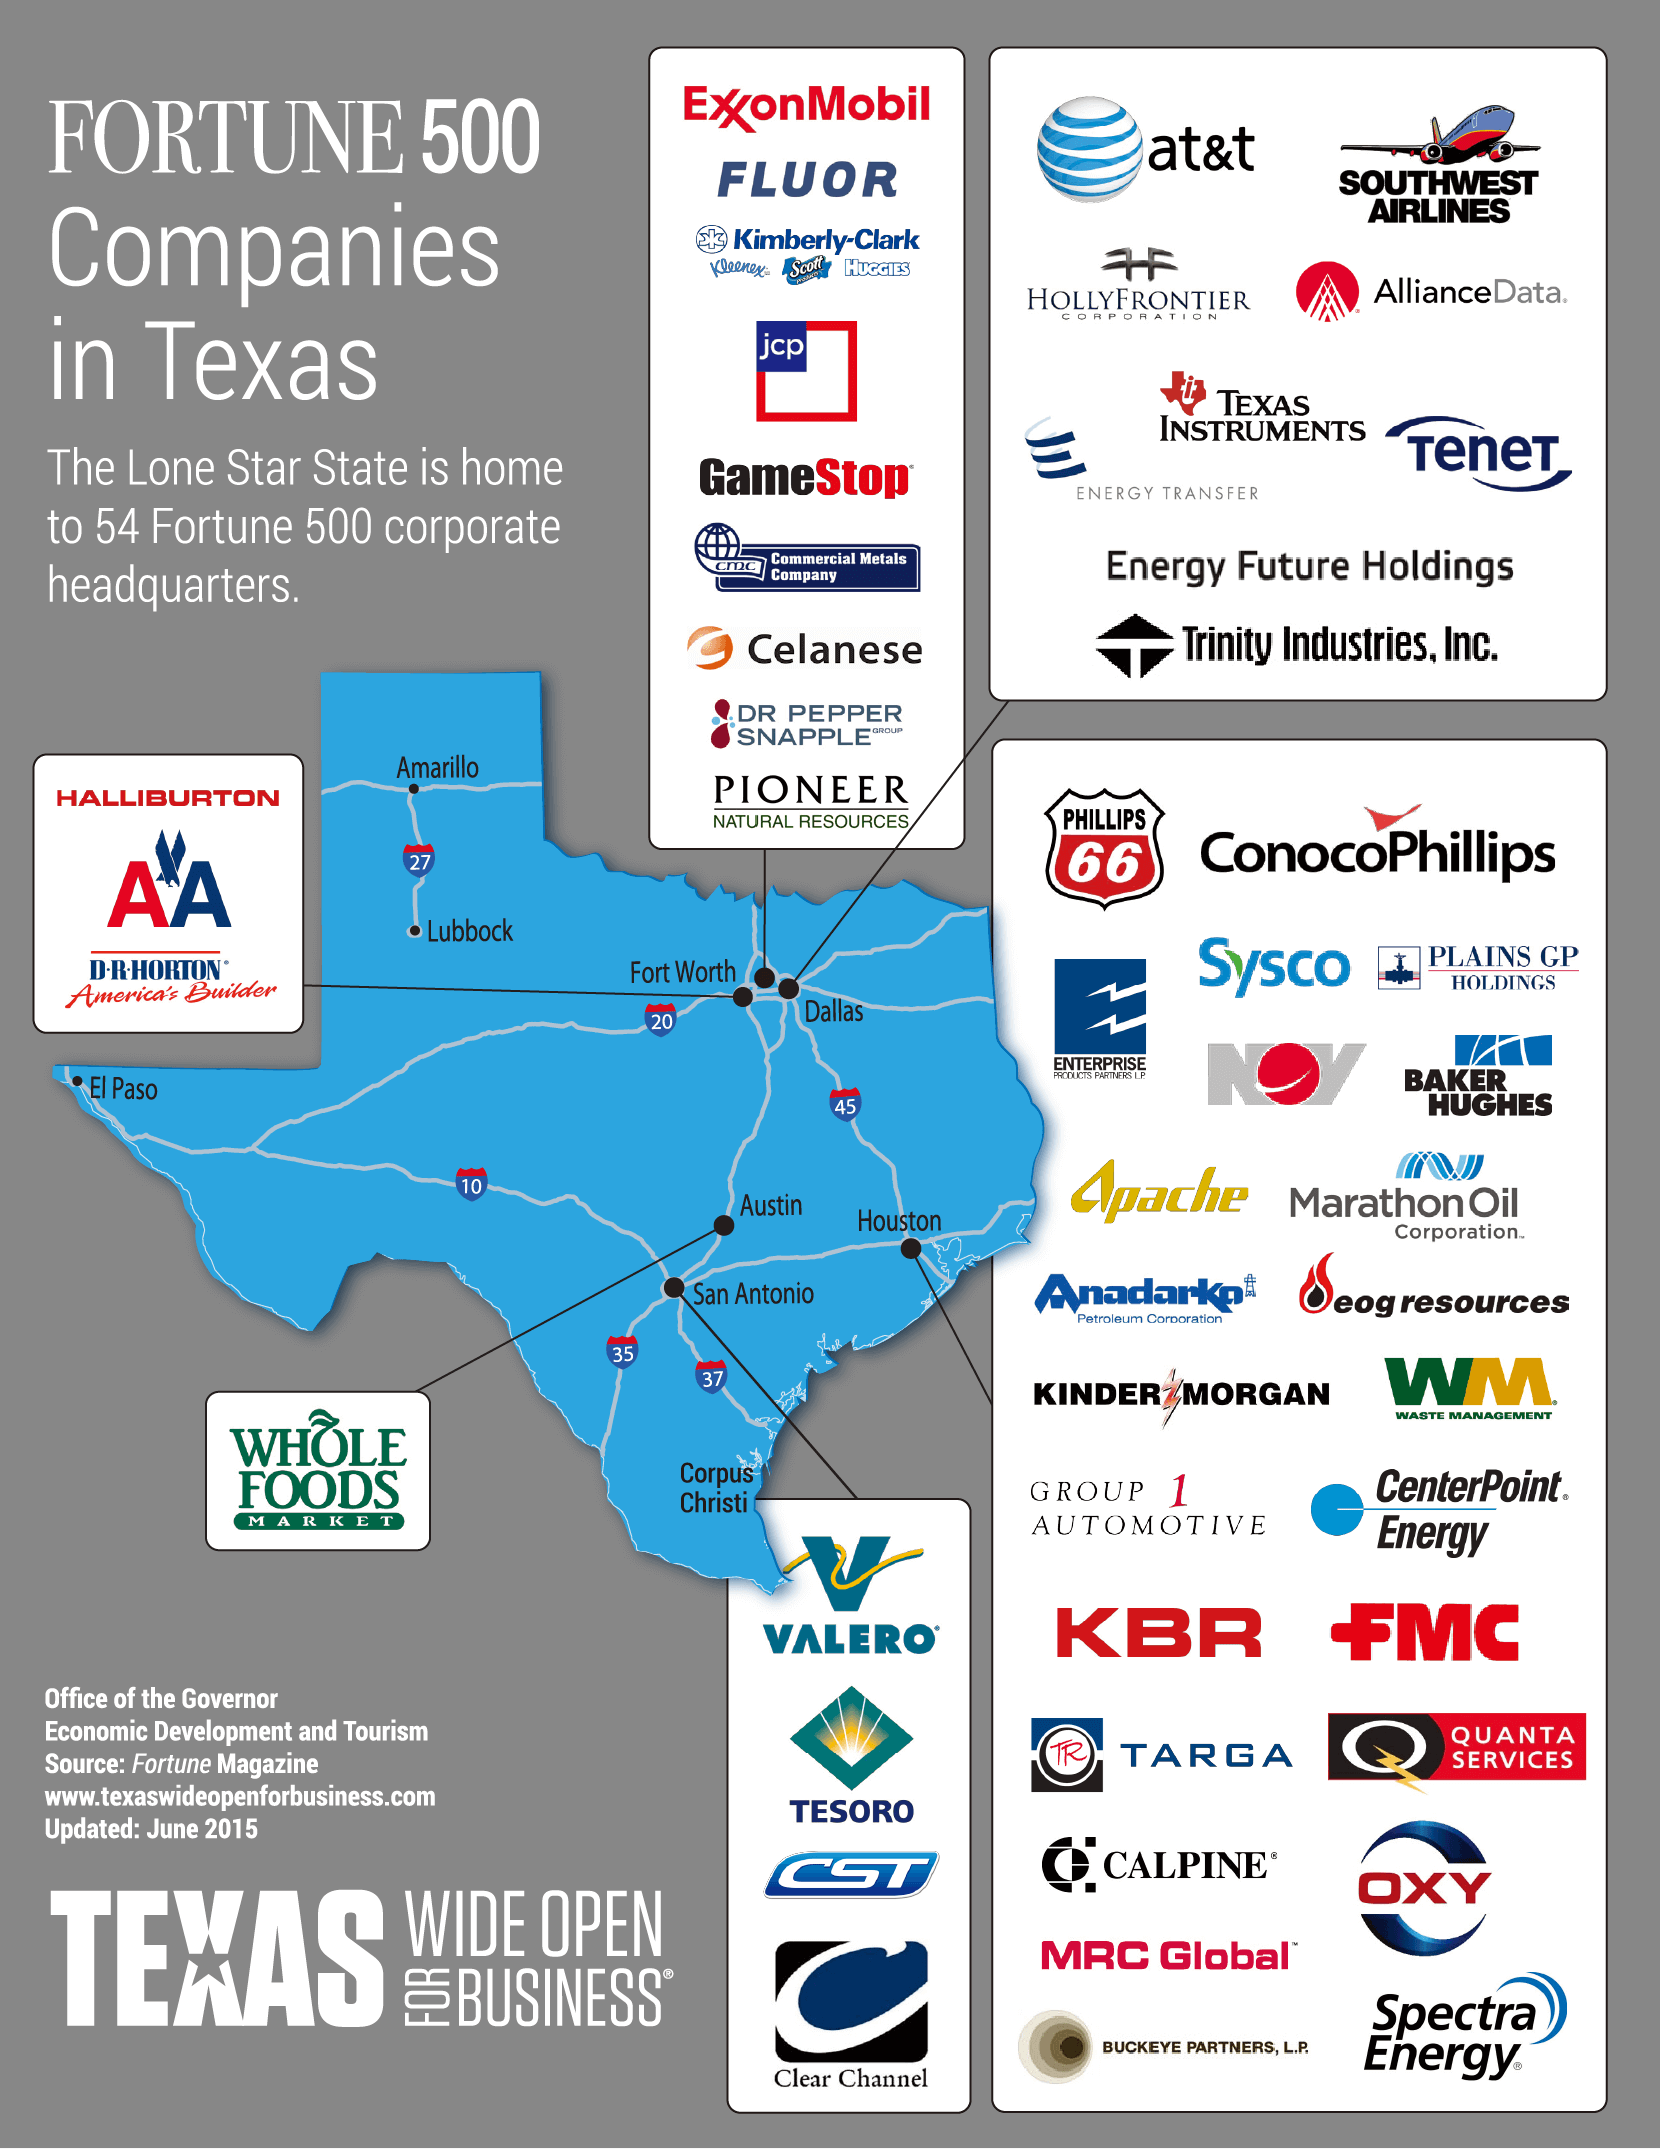 FORTUNE 500 Companies in Texas